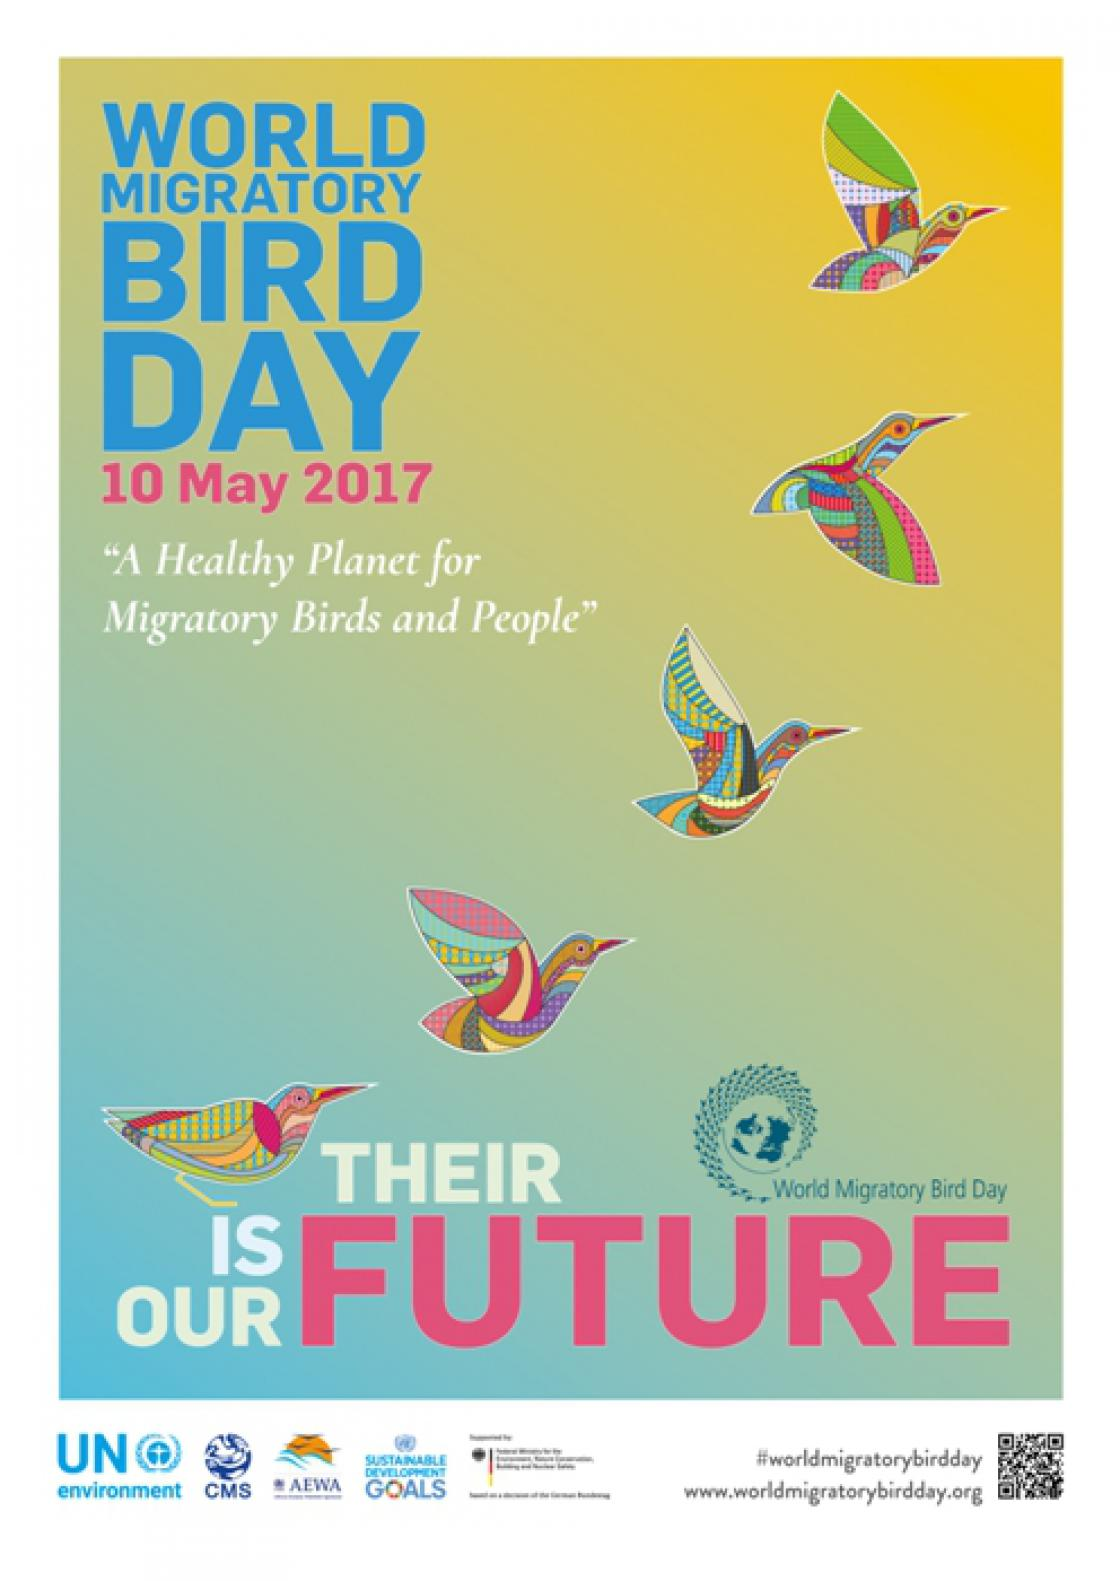 Poster design volunteer - Bonn 7 March 2017 Ferney Manrique Aragon A Dedicated Colombian Un Online Volunteer Based In China Used His Graphic Design Skills To Produce Our